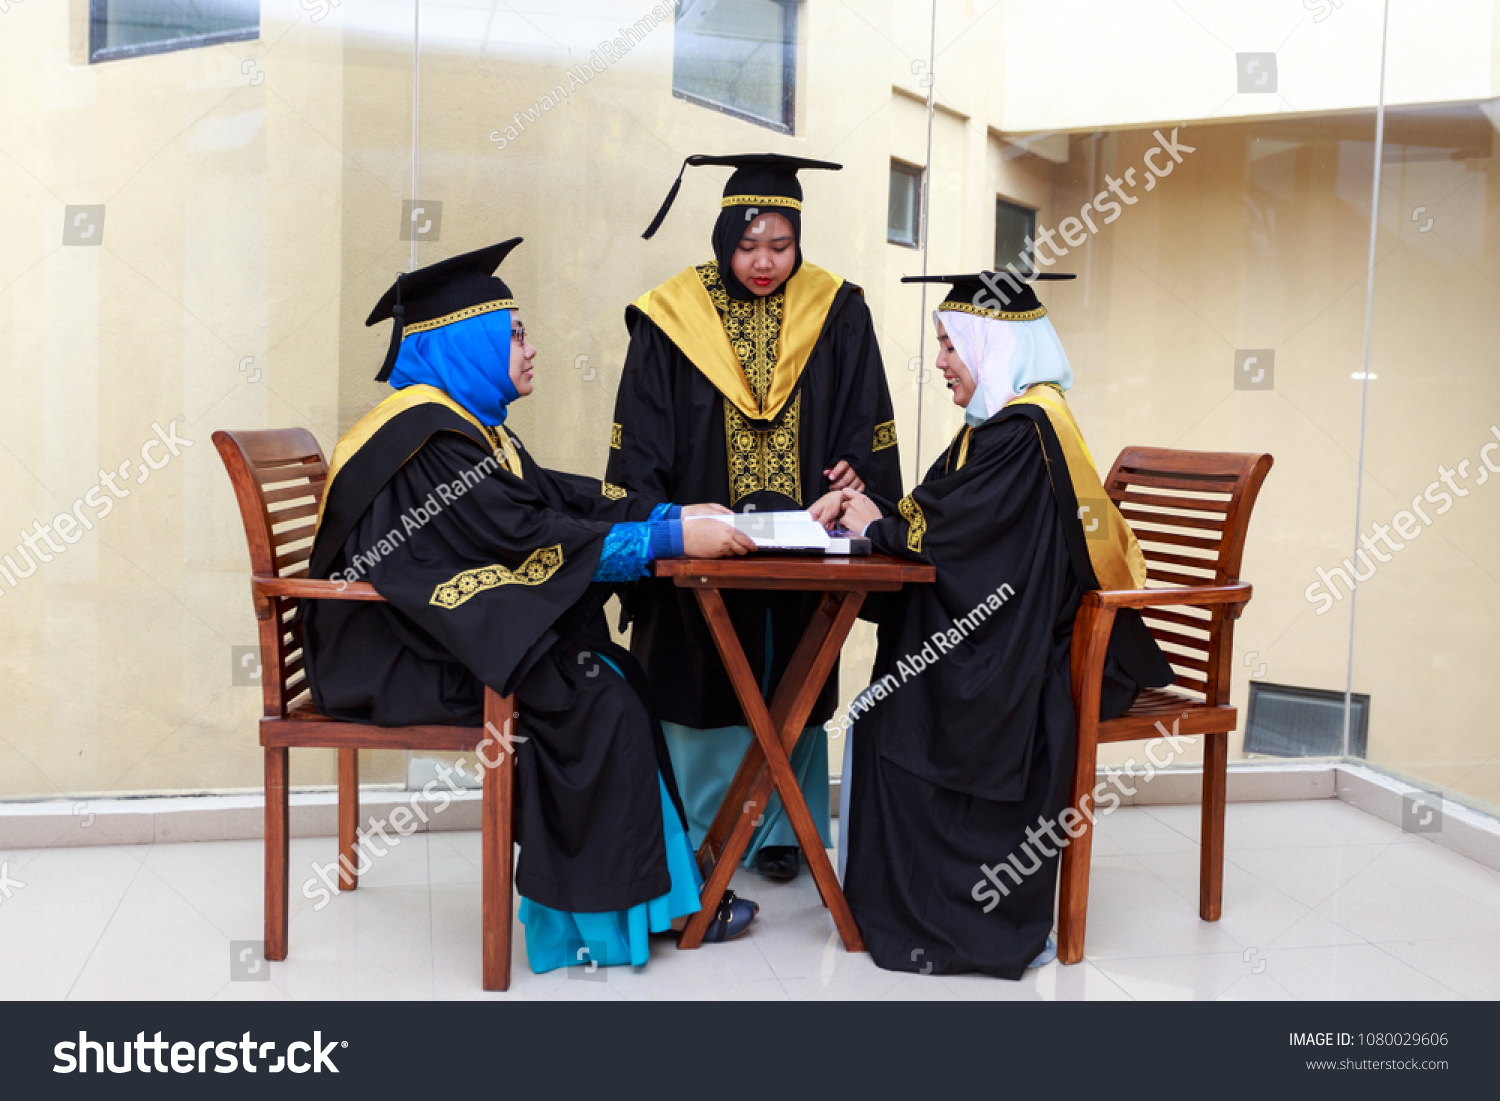 Three Women Of Student Discussing In Library With Graduation Dress Selective Focus Copy Space